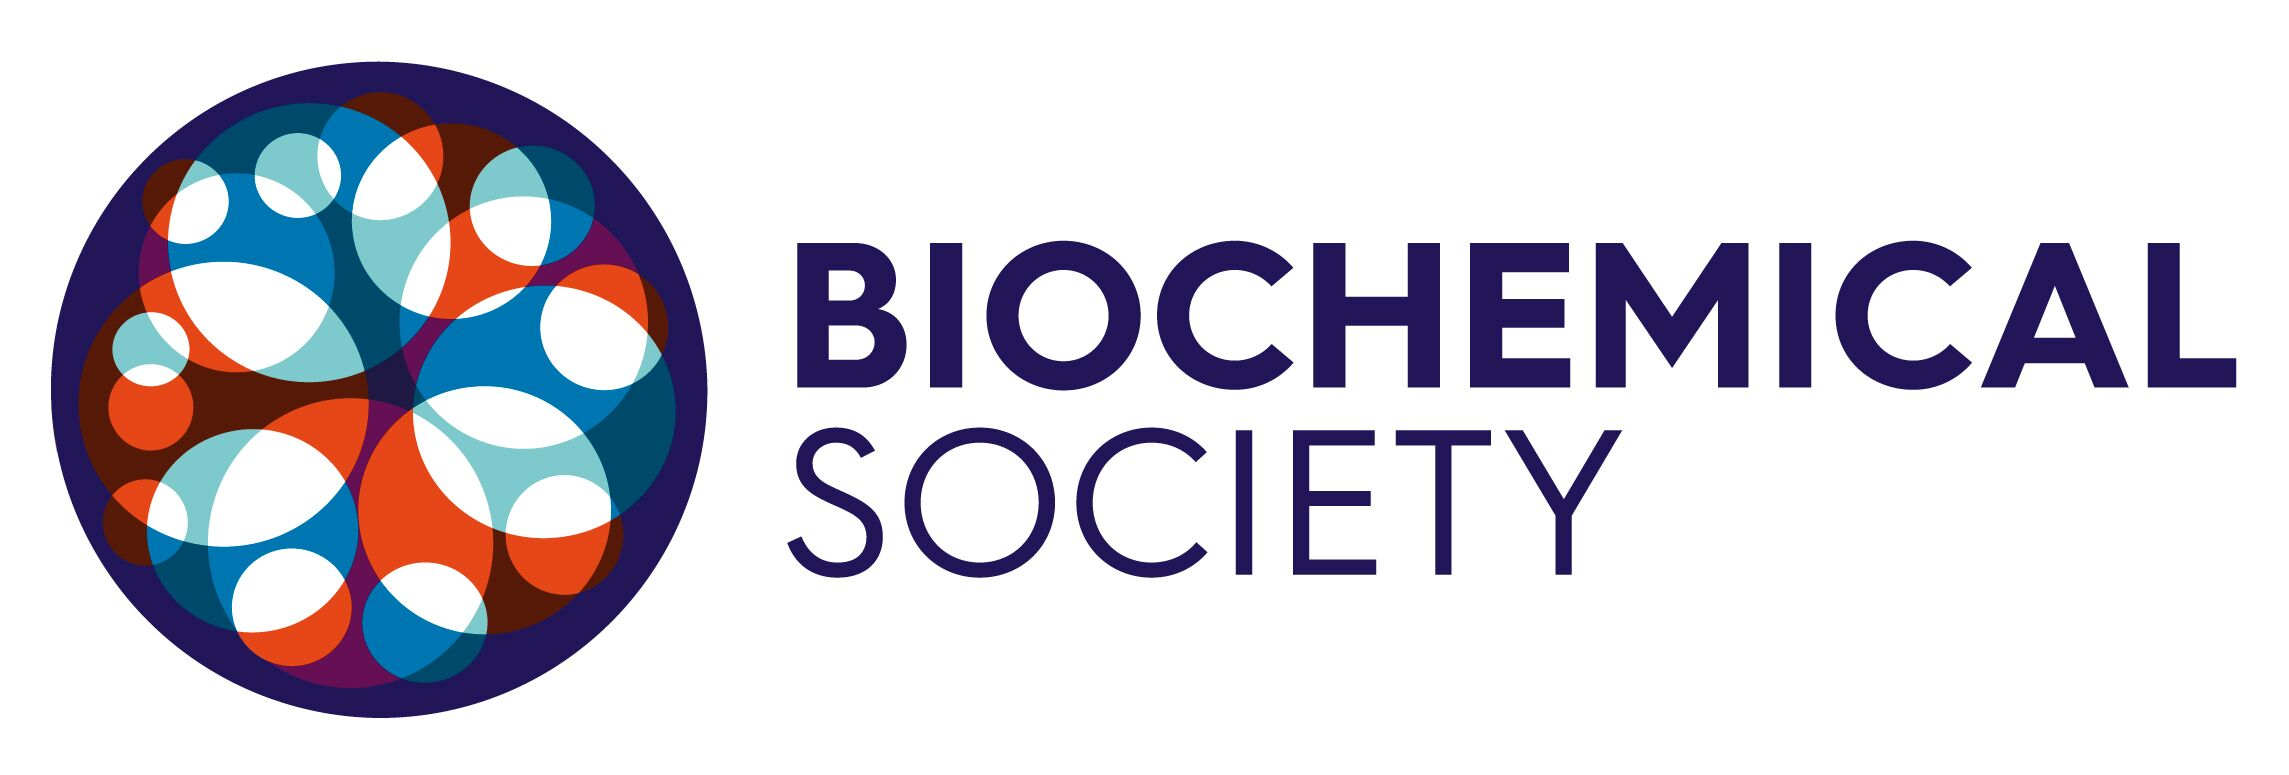 Biochemical Society logo.jpg